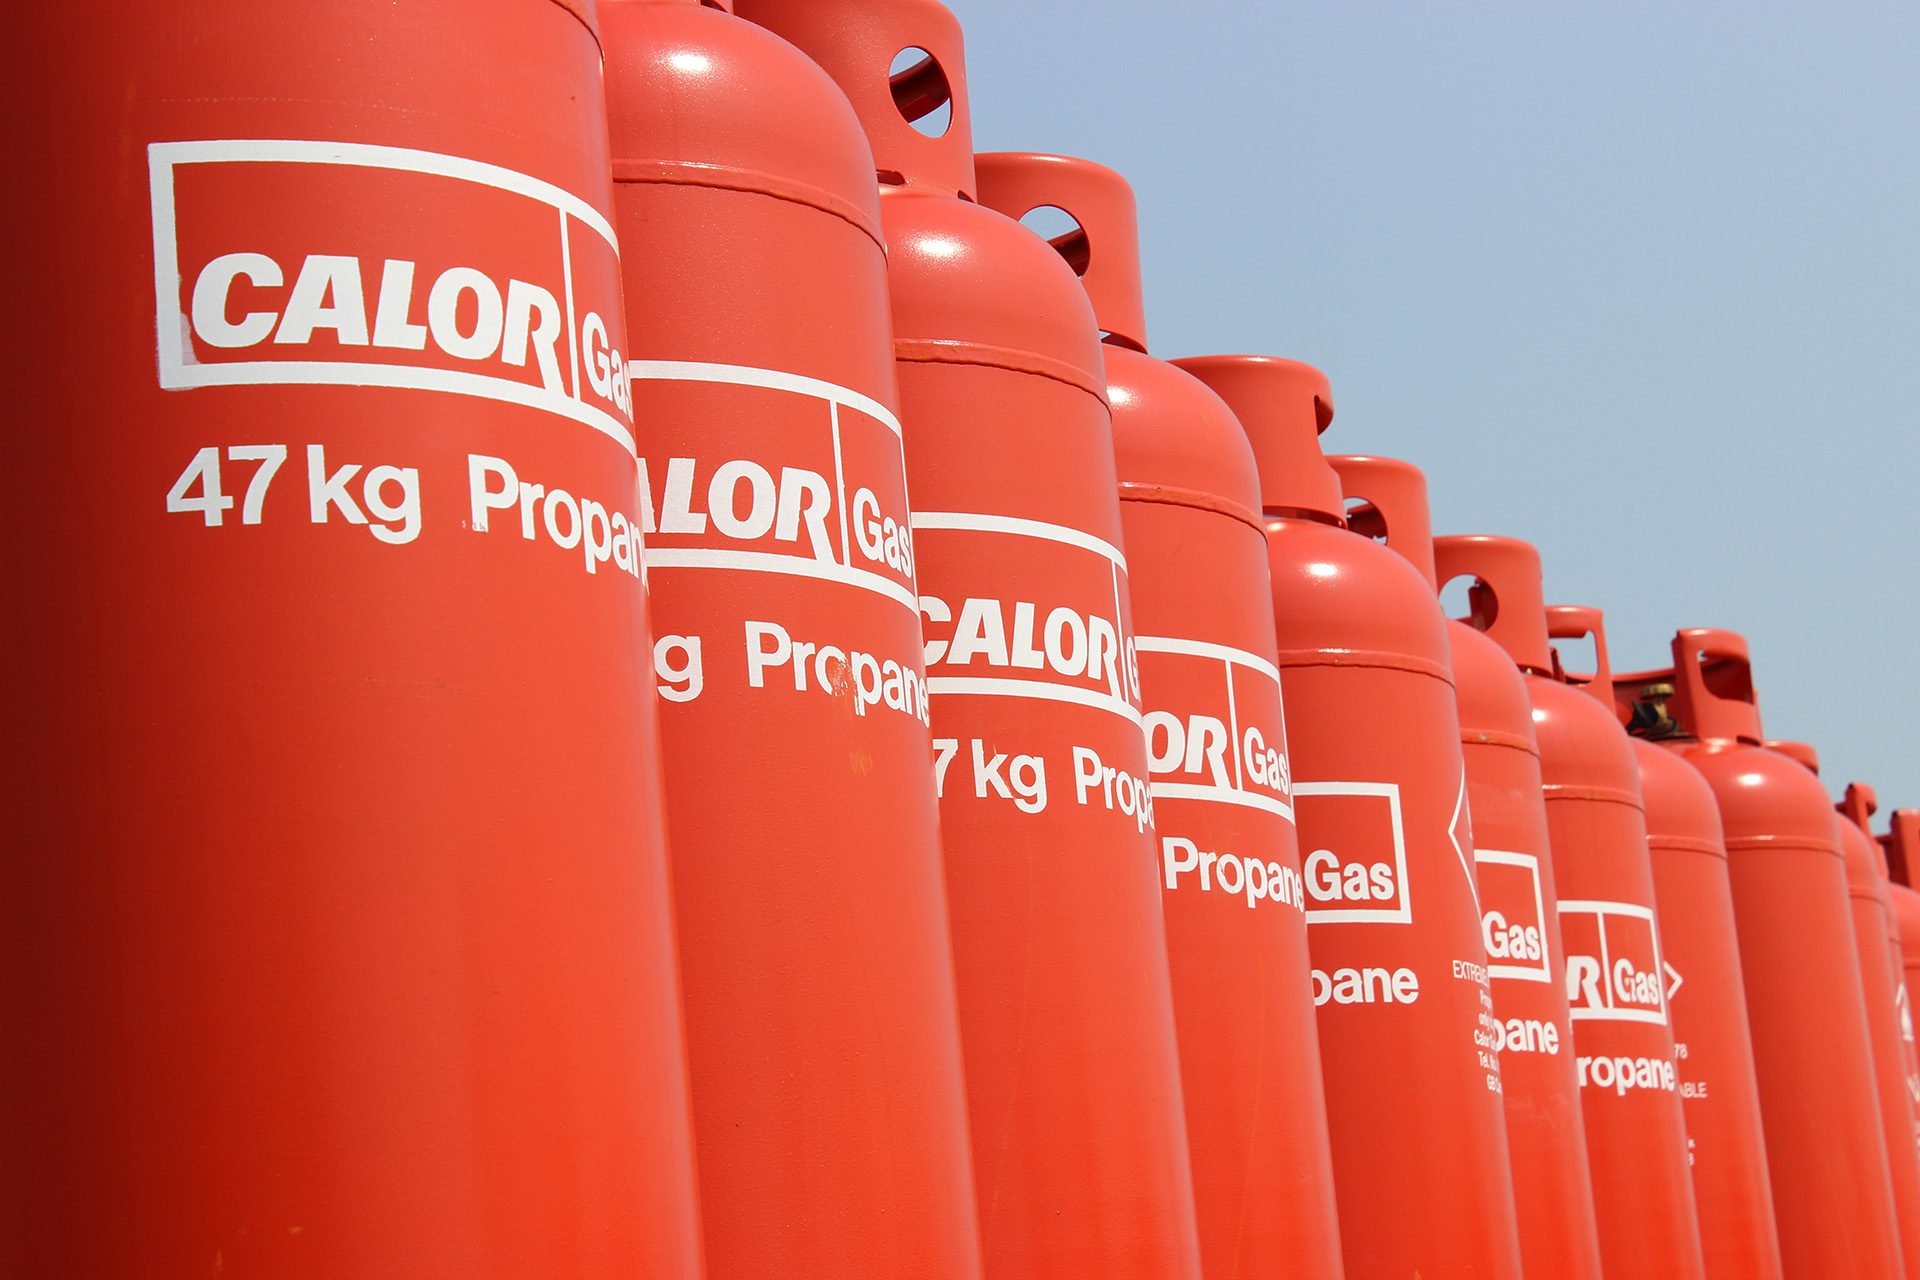 A row of 47kg propane Calor gas bottles